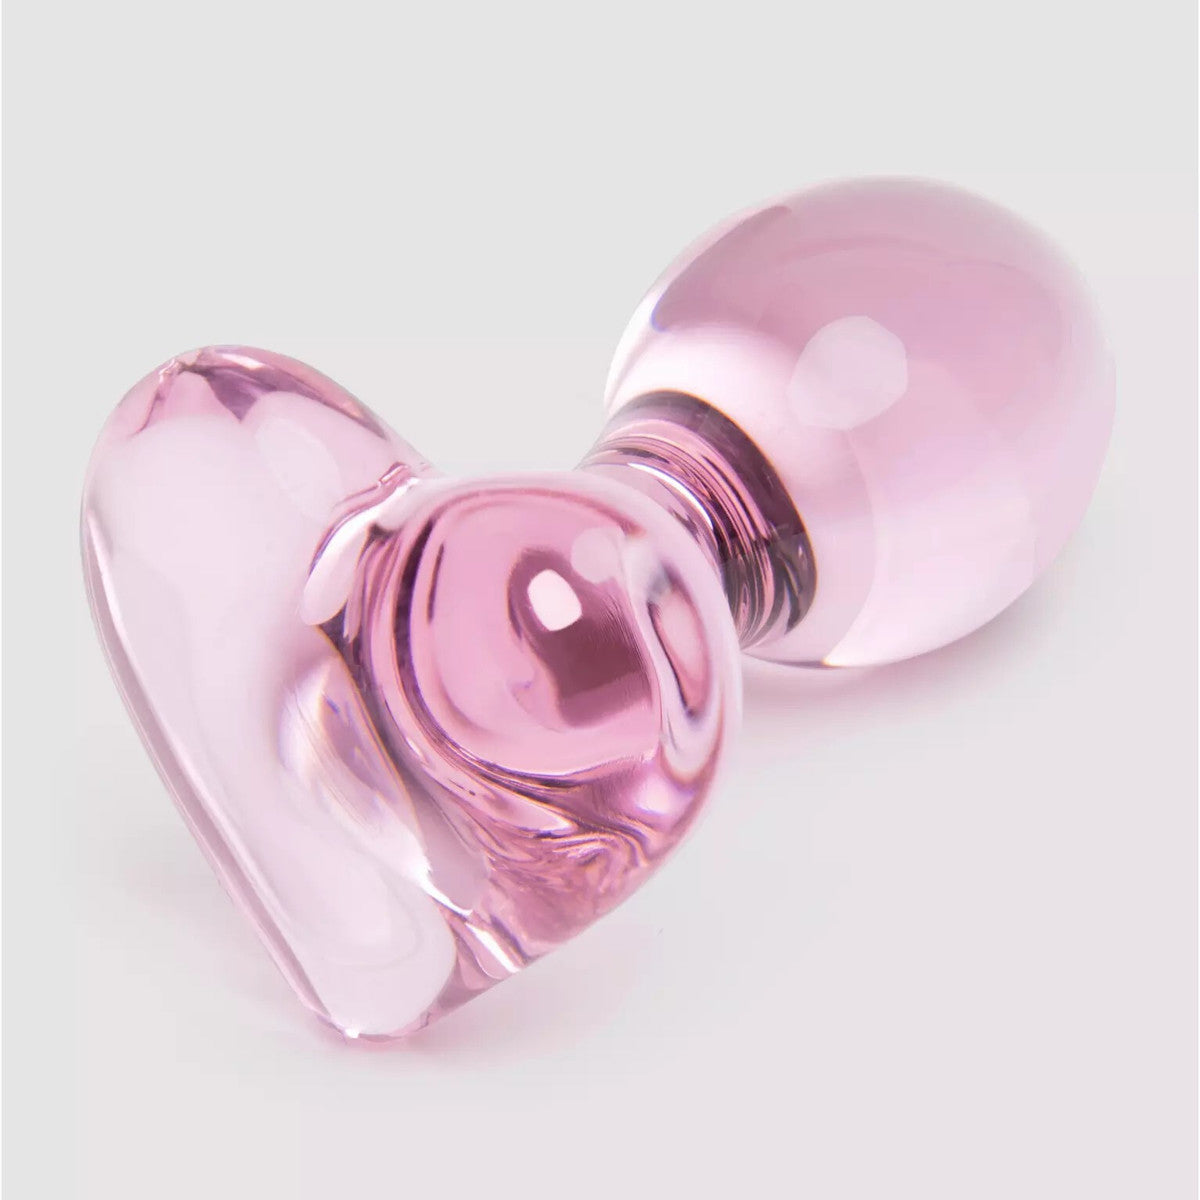 Best Types Of Anal Sex Toys Glass Butt Plug